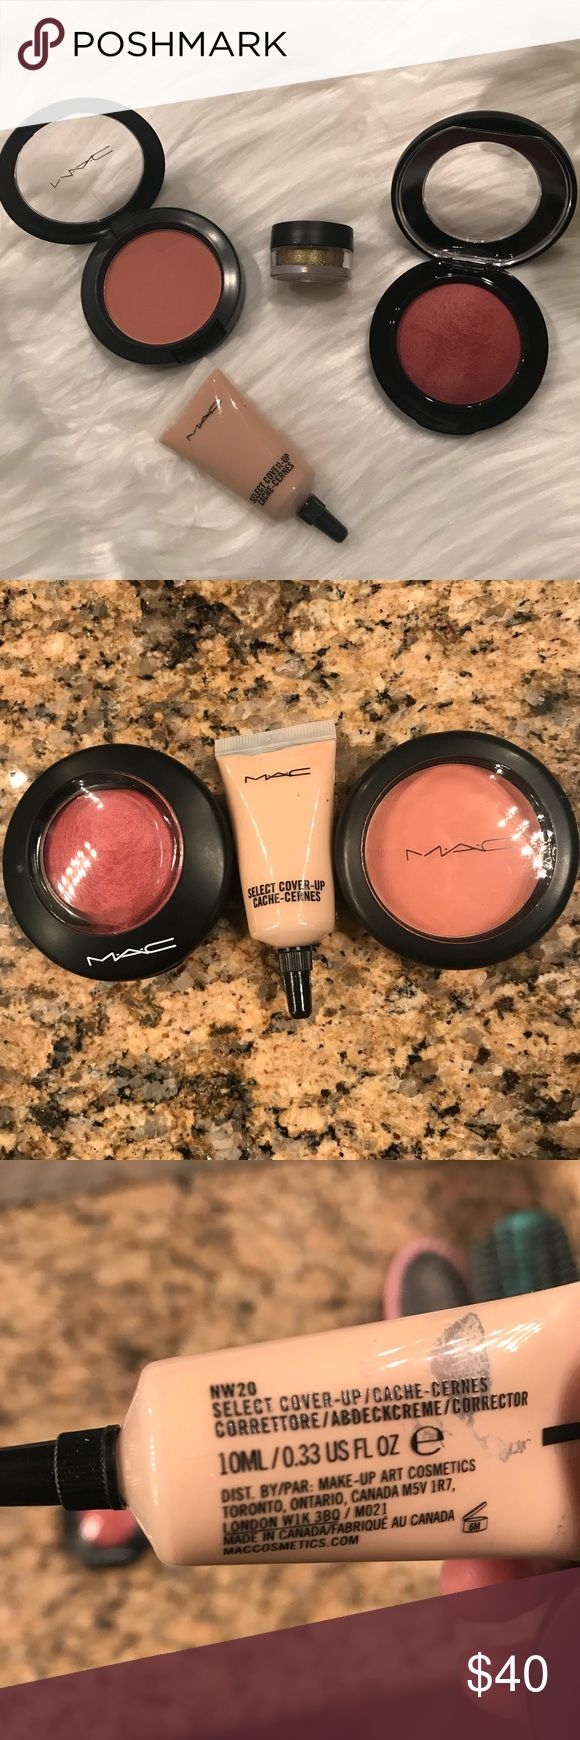 MAC Cosmetics Bundle! Swatched! I've had my makeup done at MAC a few times and they make you purchase things...so here we are lol. Included is: Melba Matte Powder Blush, Gleeful Mineralized Blush, NW20 Select Cover-Up, and as an added bonus MAC professional grade loose gold glitter. No trades, Posh transactions only, no low balls please! MAC Cosmetics Makeup Blush